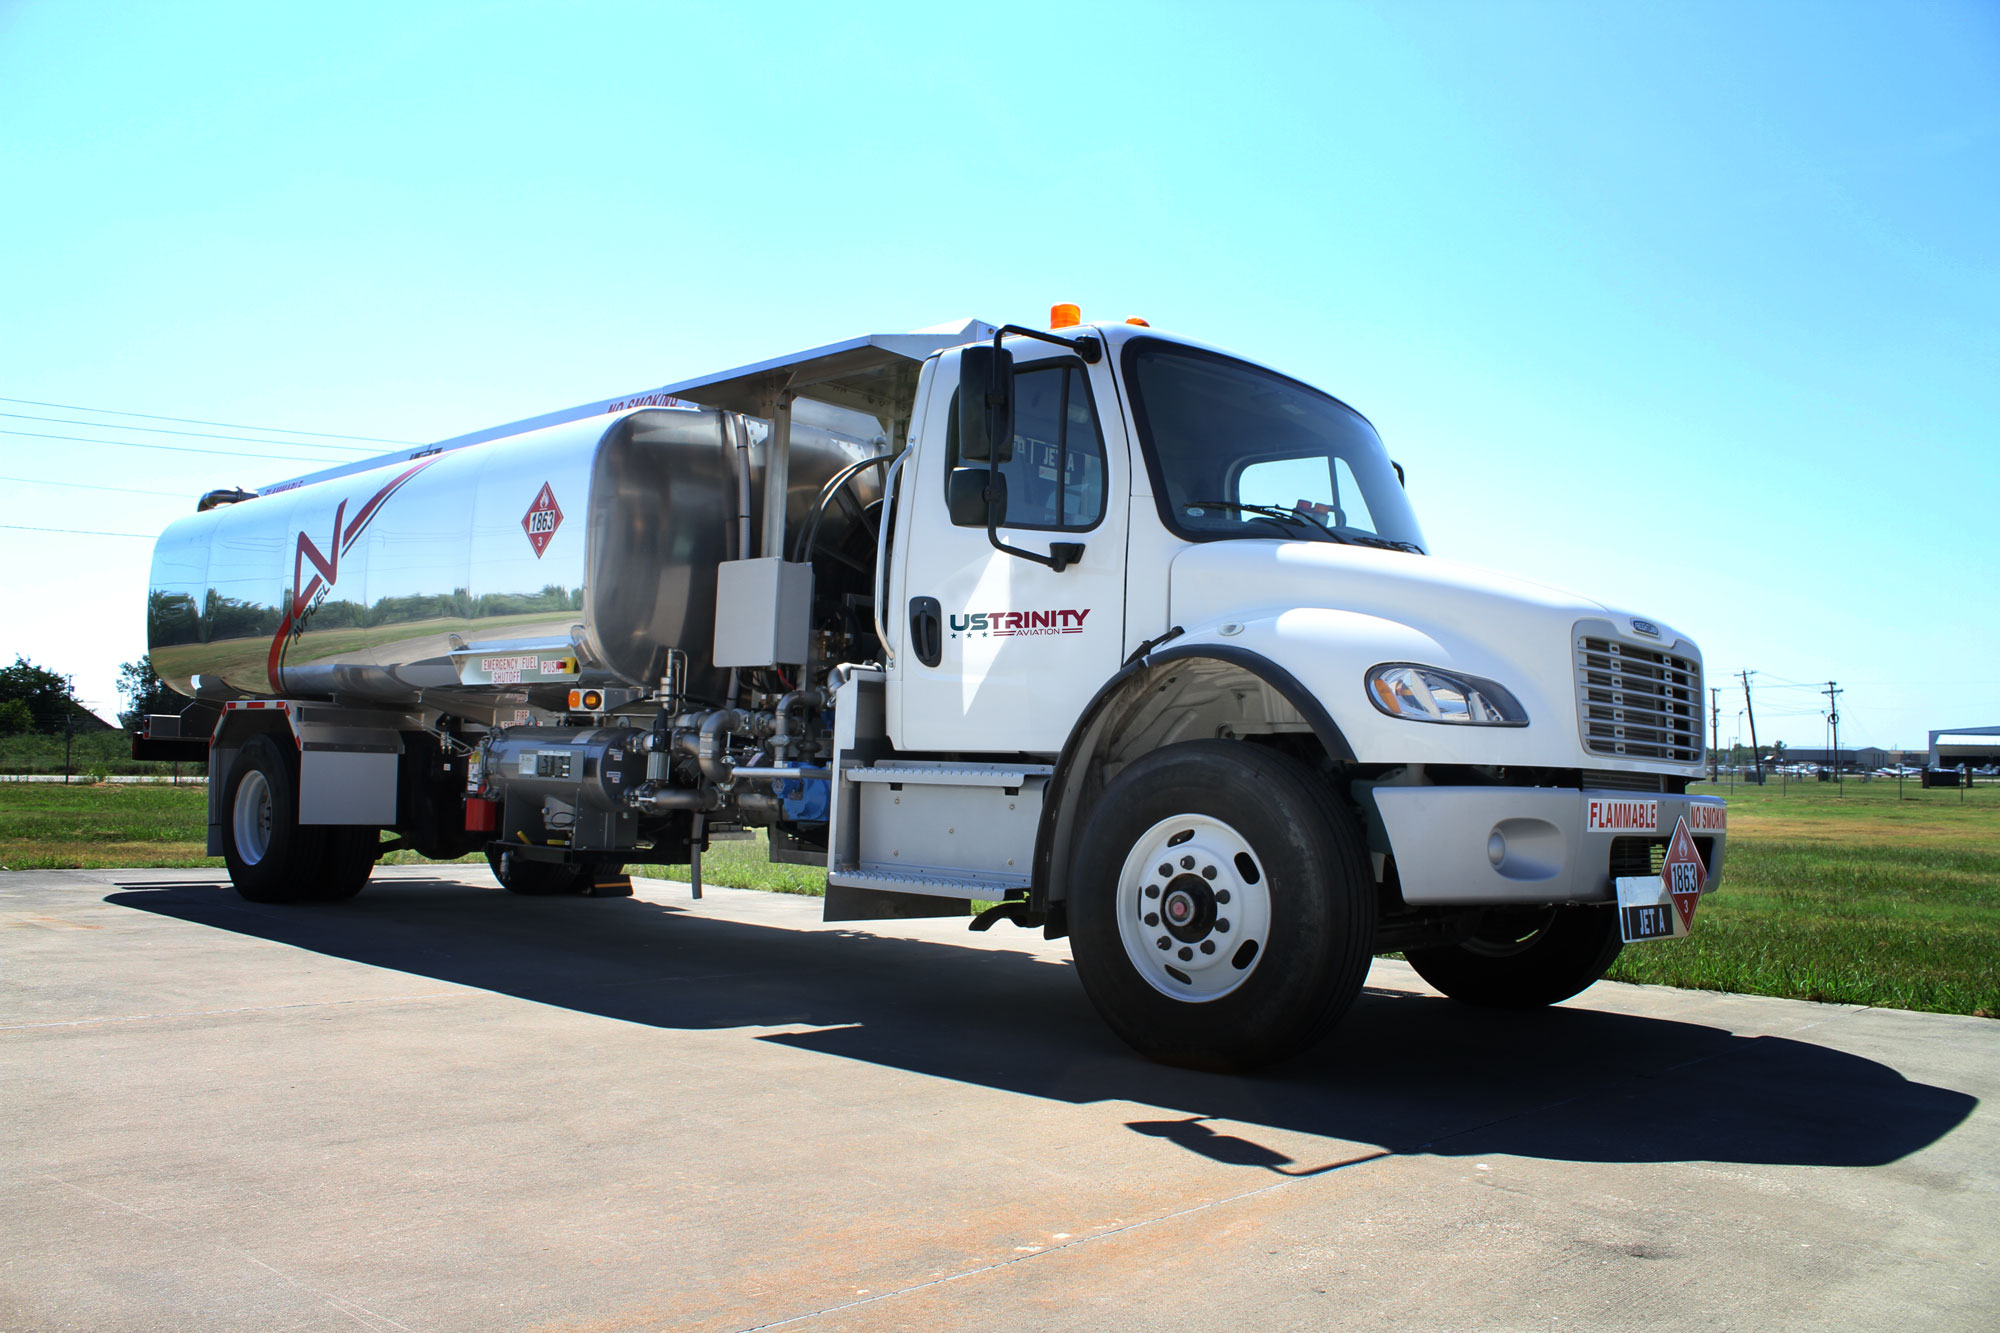 US Trinity Aviation fuel truck